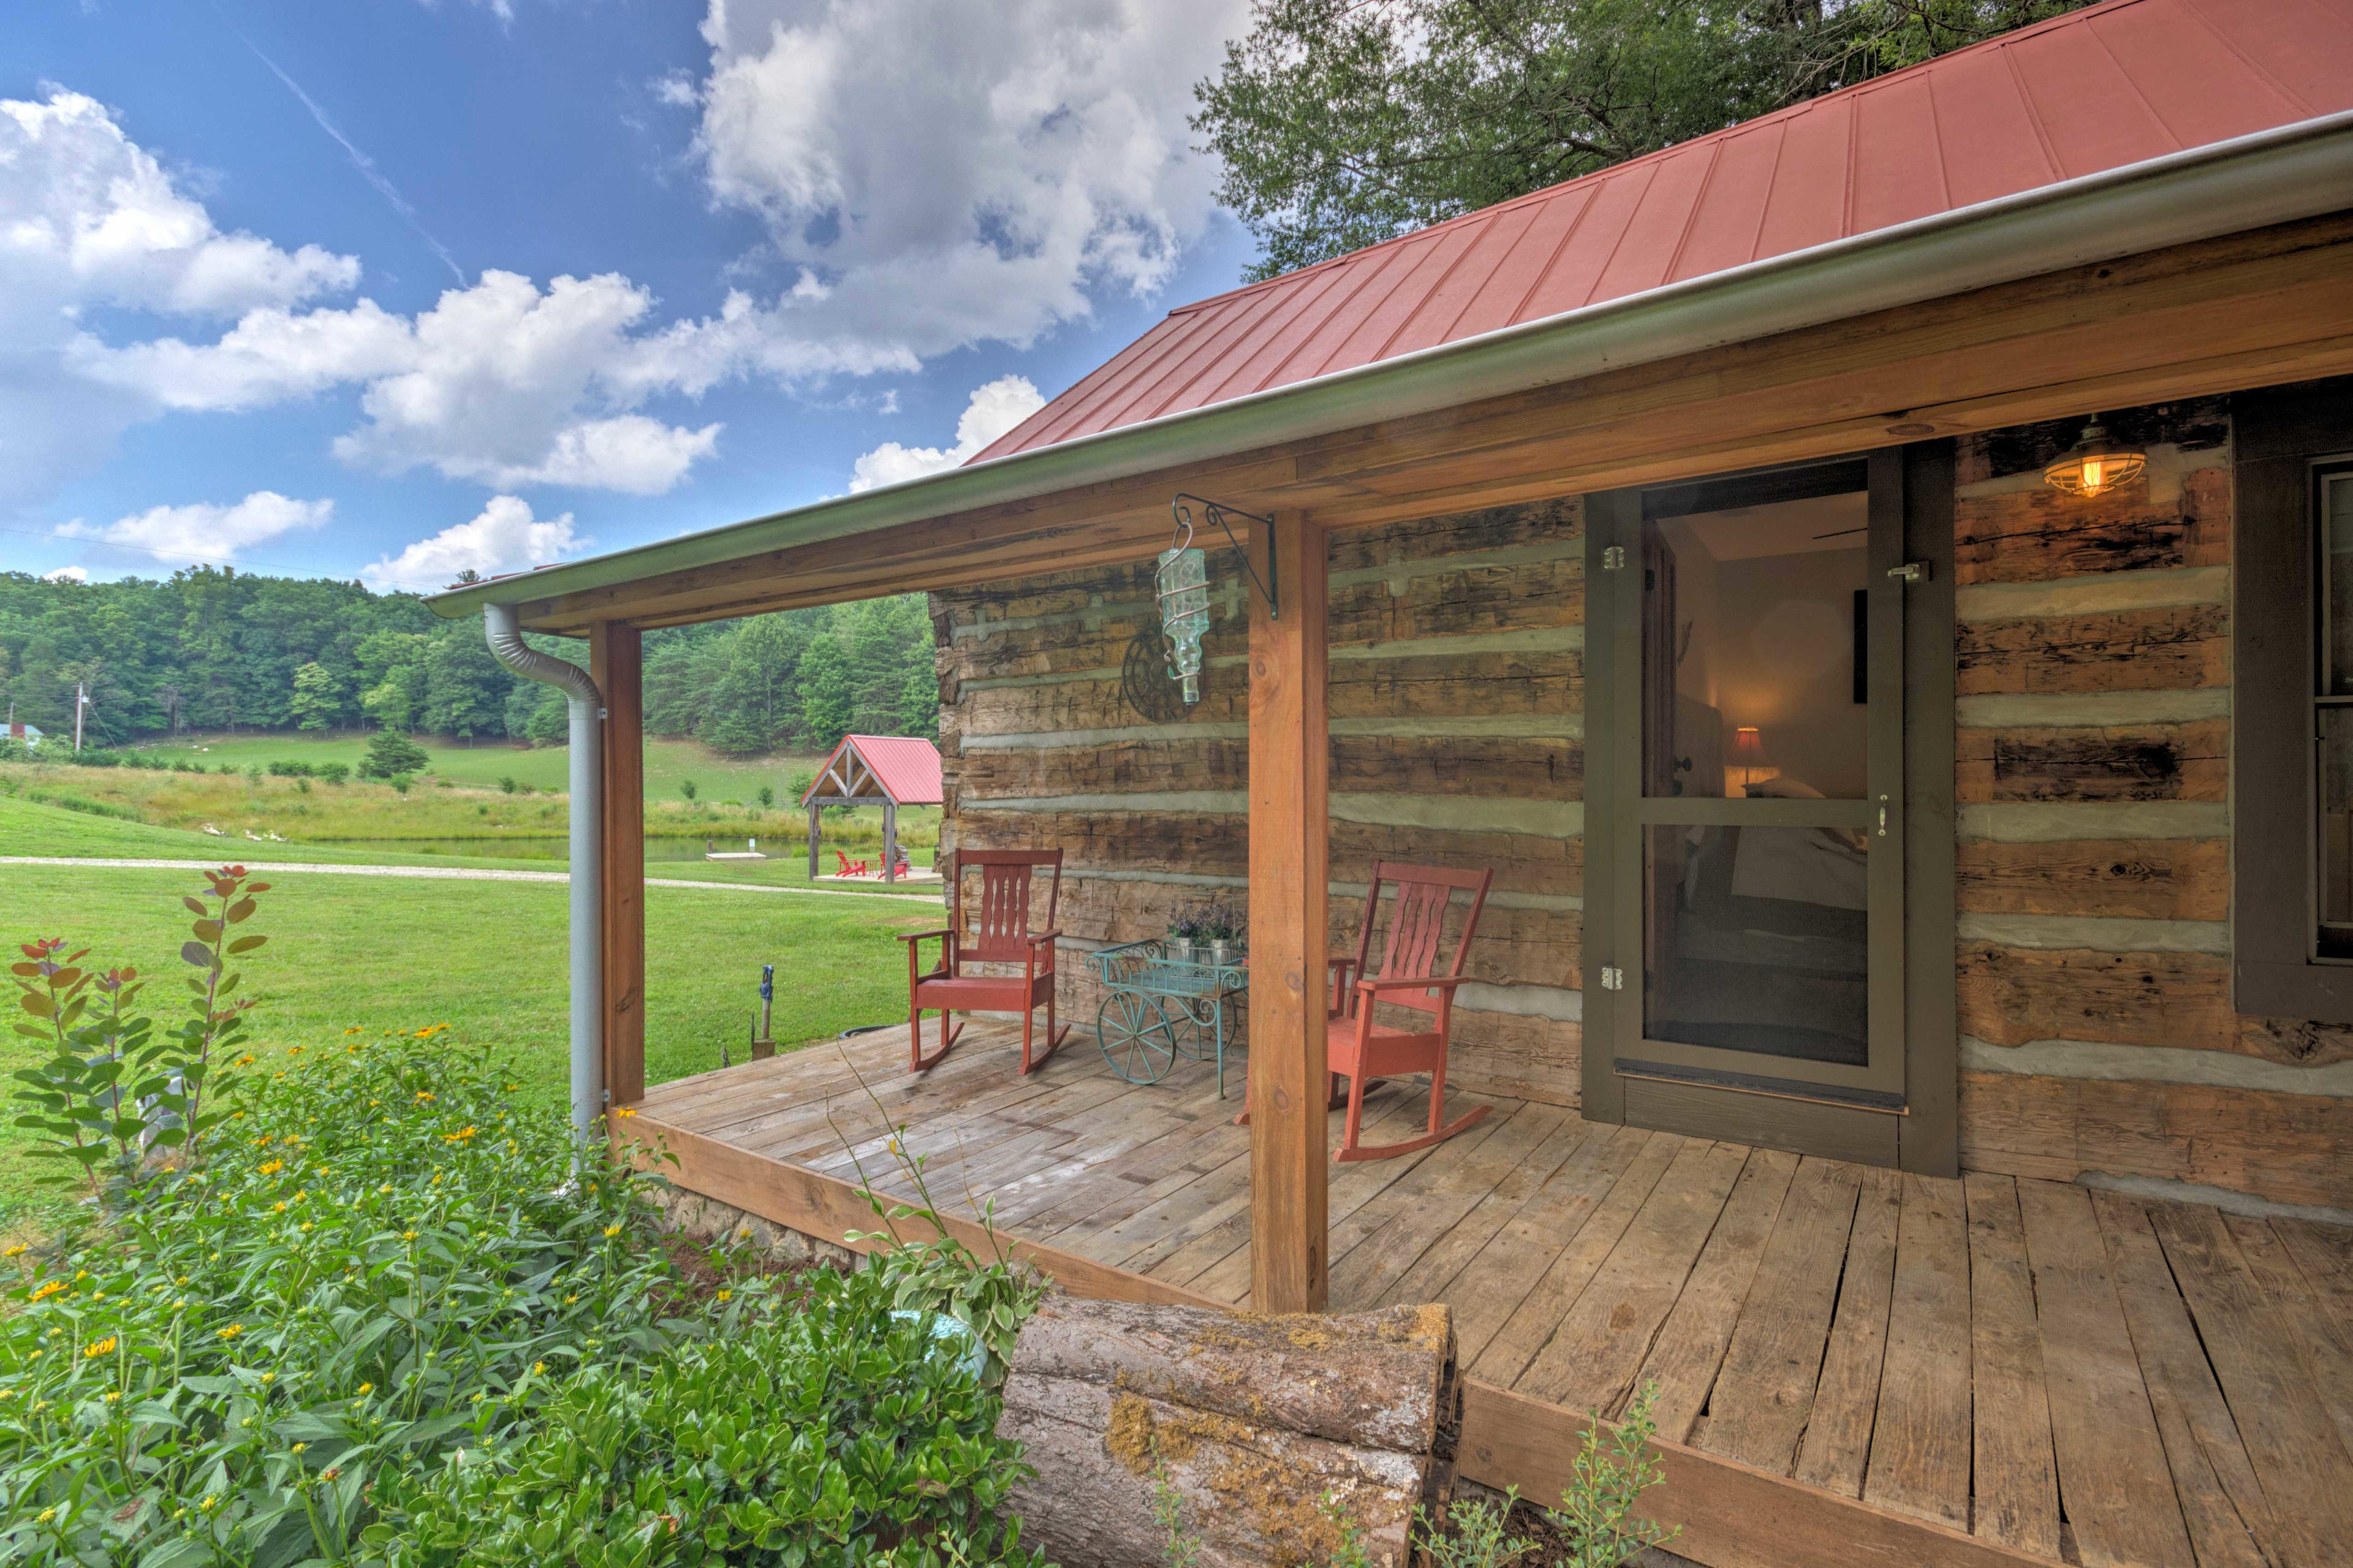 The 1,100-square-foot cabin sits on a working alpaca ranch.